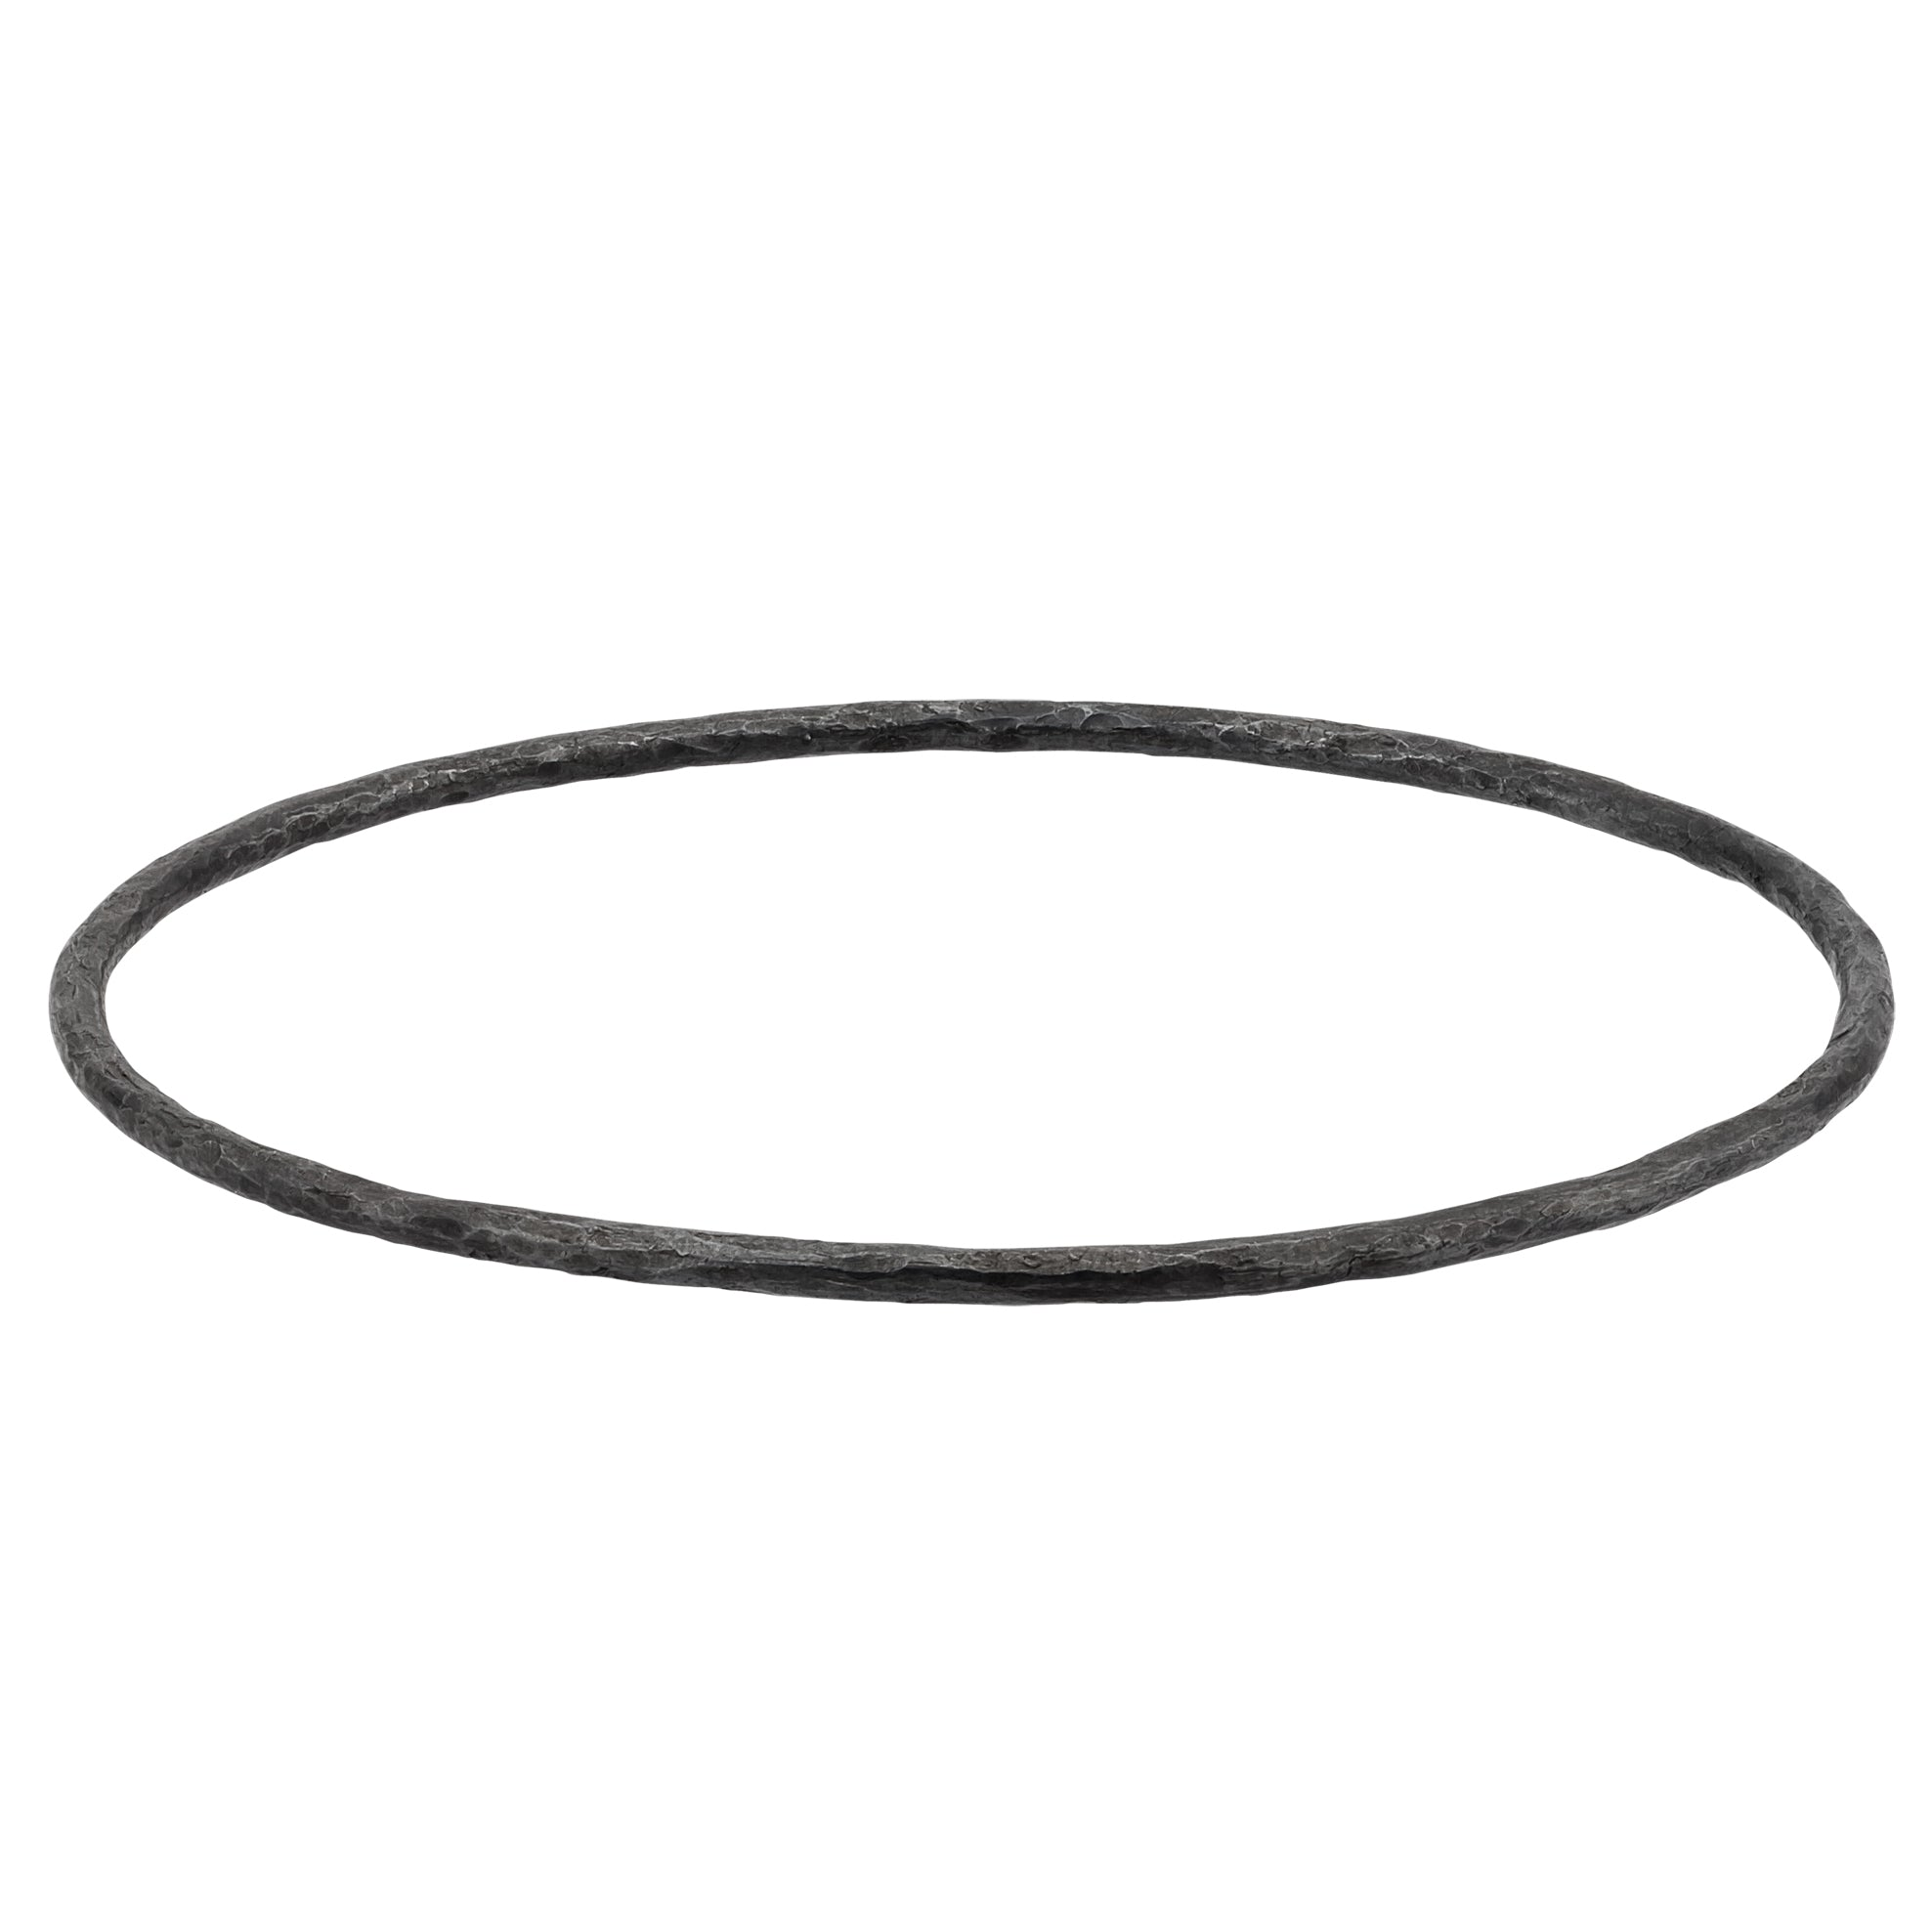 Lika Behar Plain Hammered Oxidized Silver Bangle Bracelet